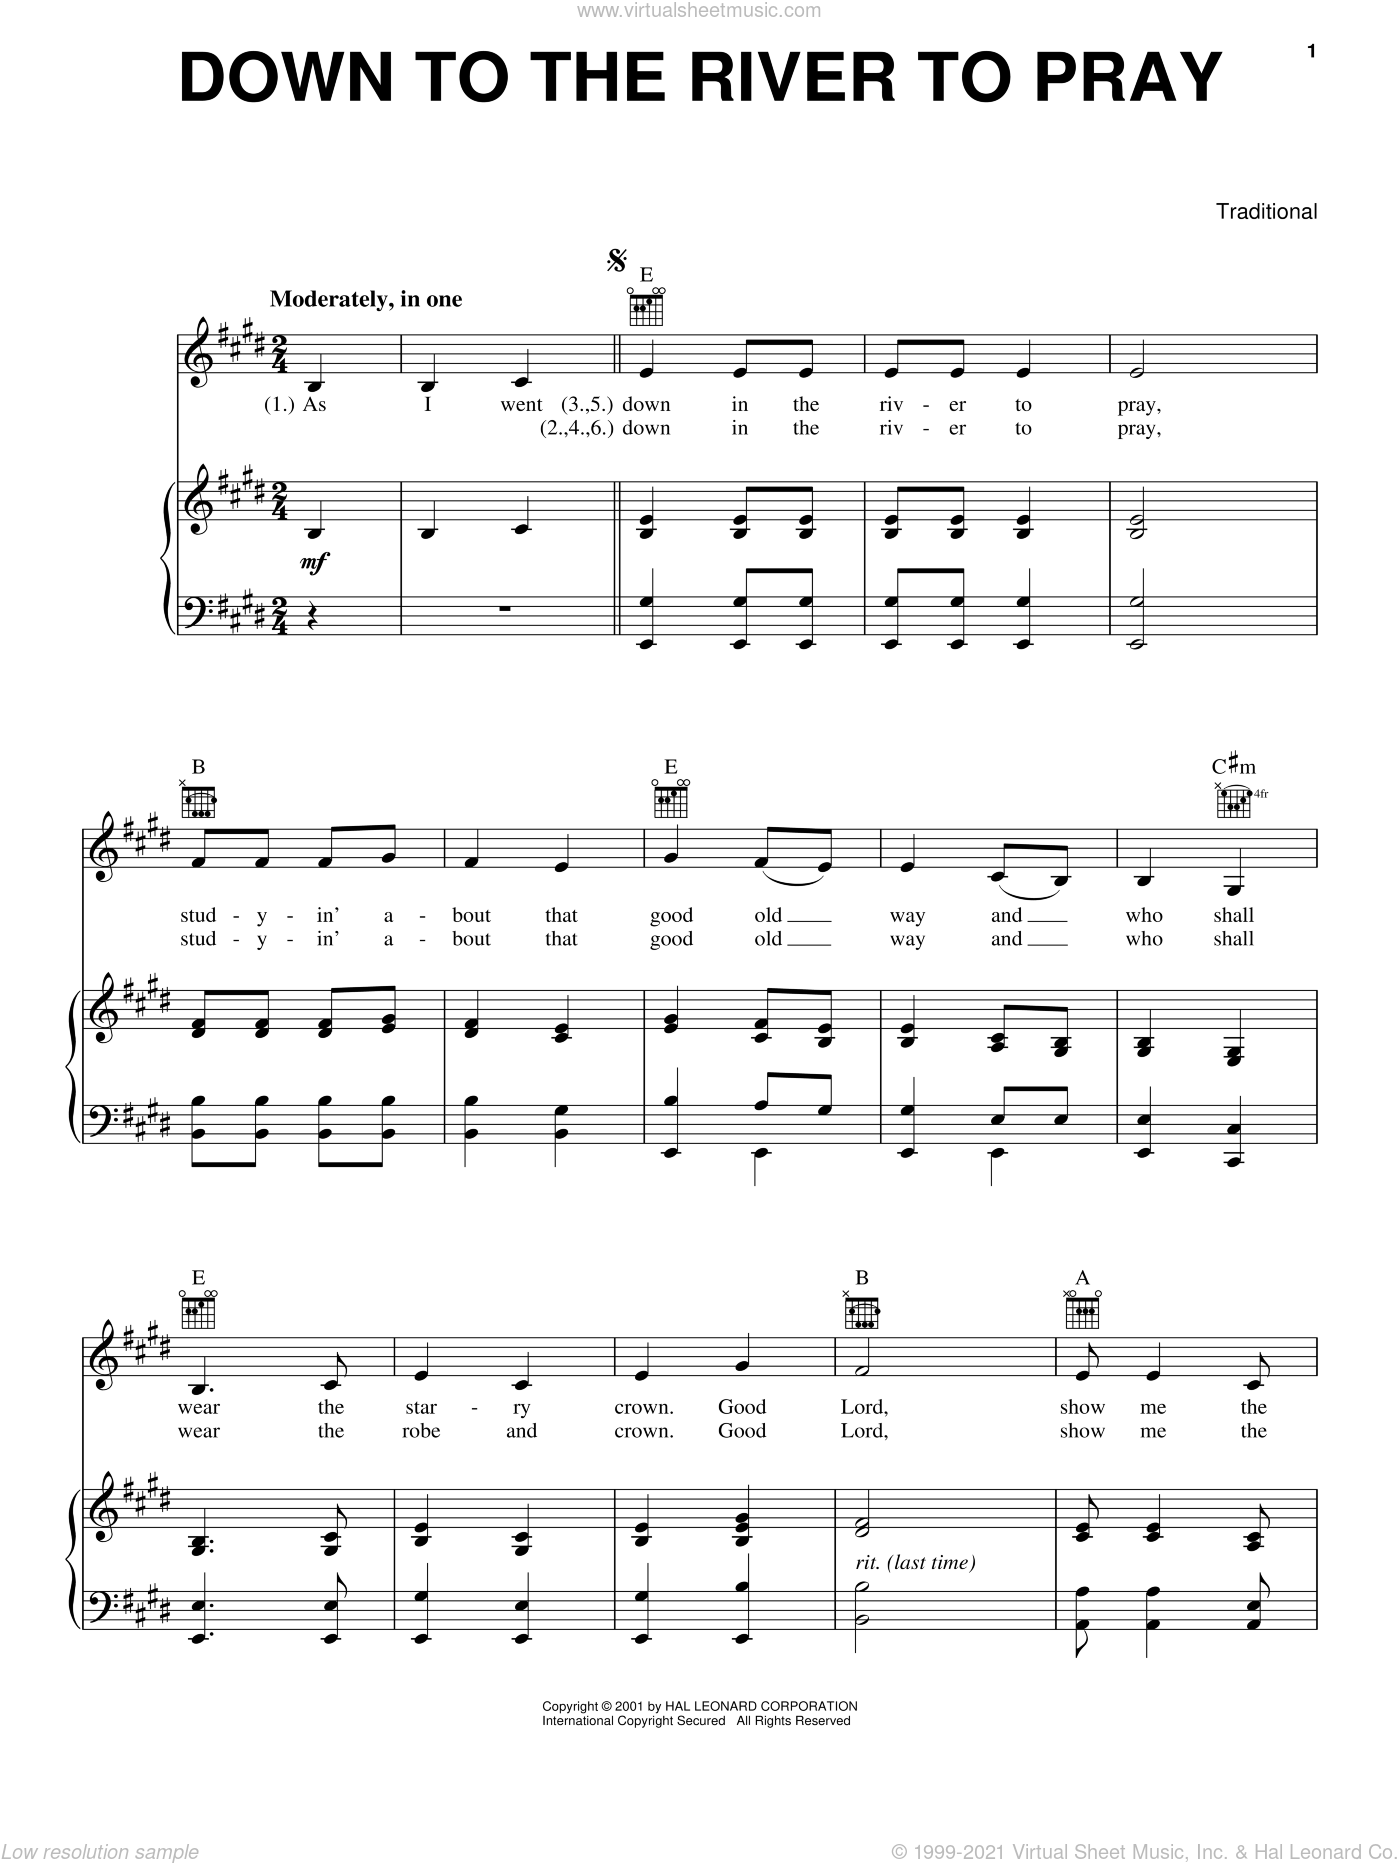 Down To The River To Pray sheet music for voice, piano or guitar